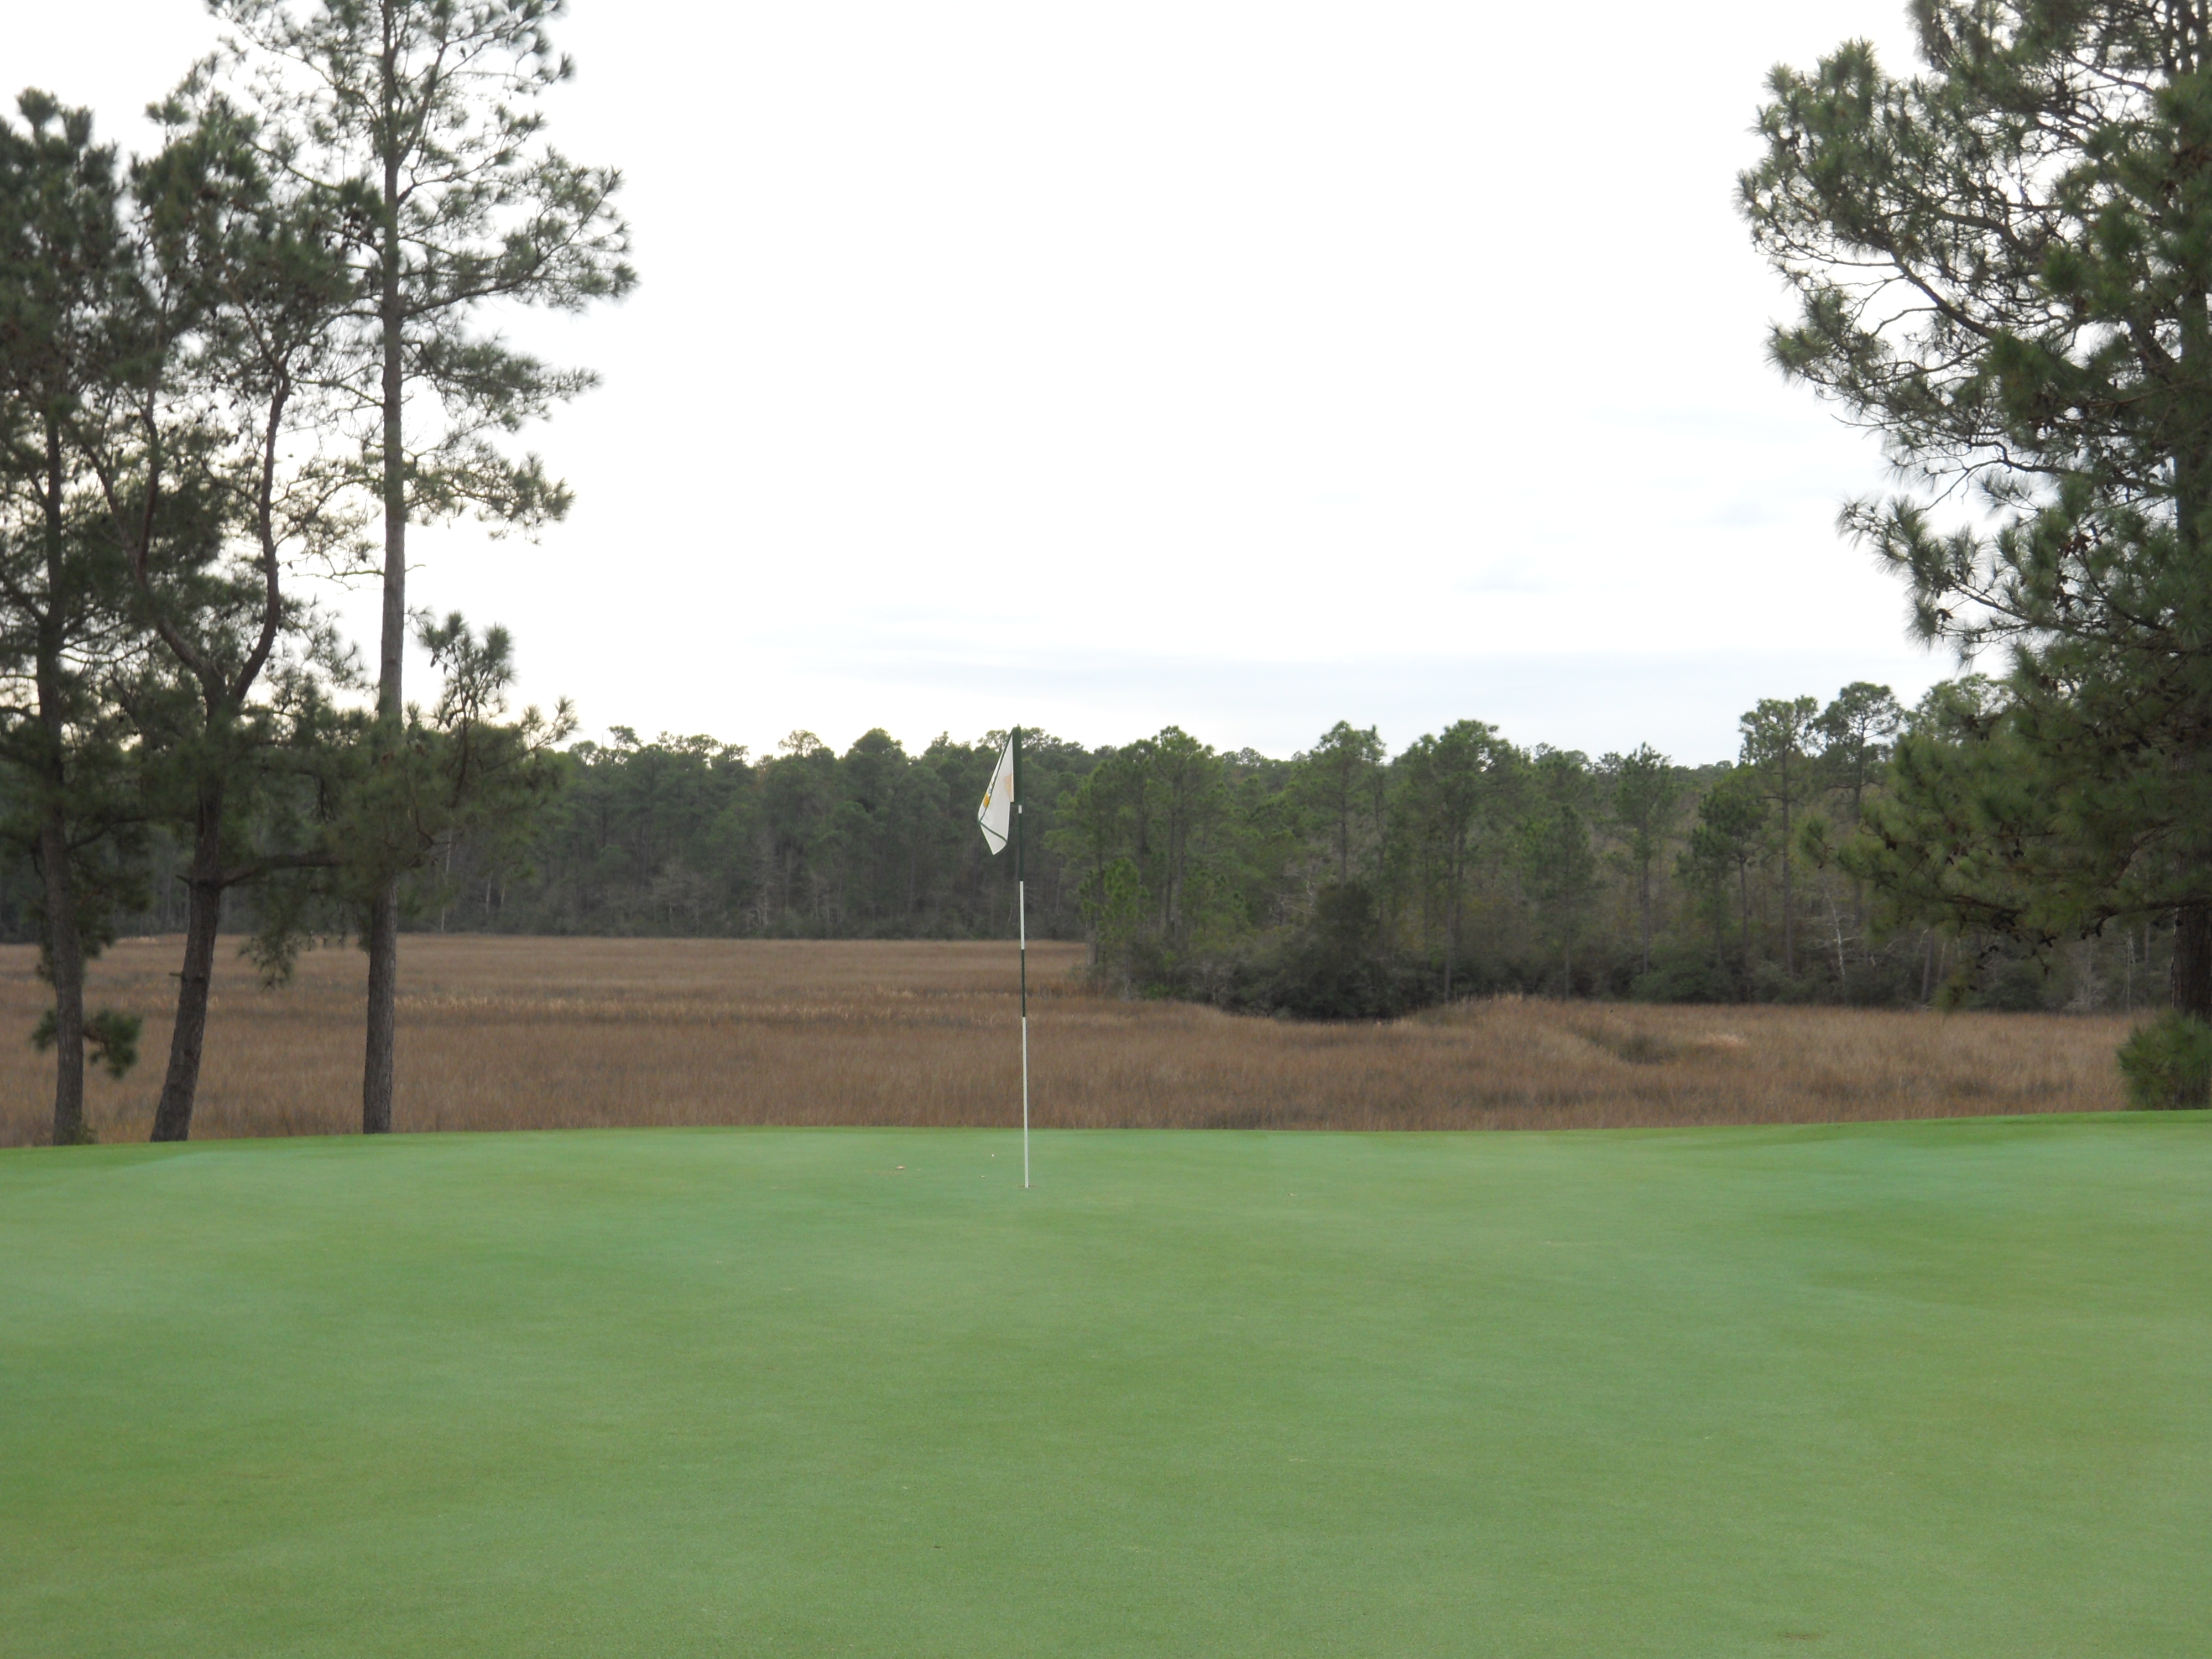 Schoolnik's golf travels at Shell Landing Gautier Mississippi